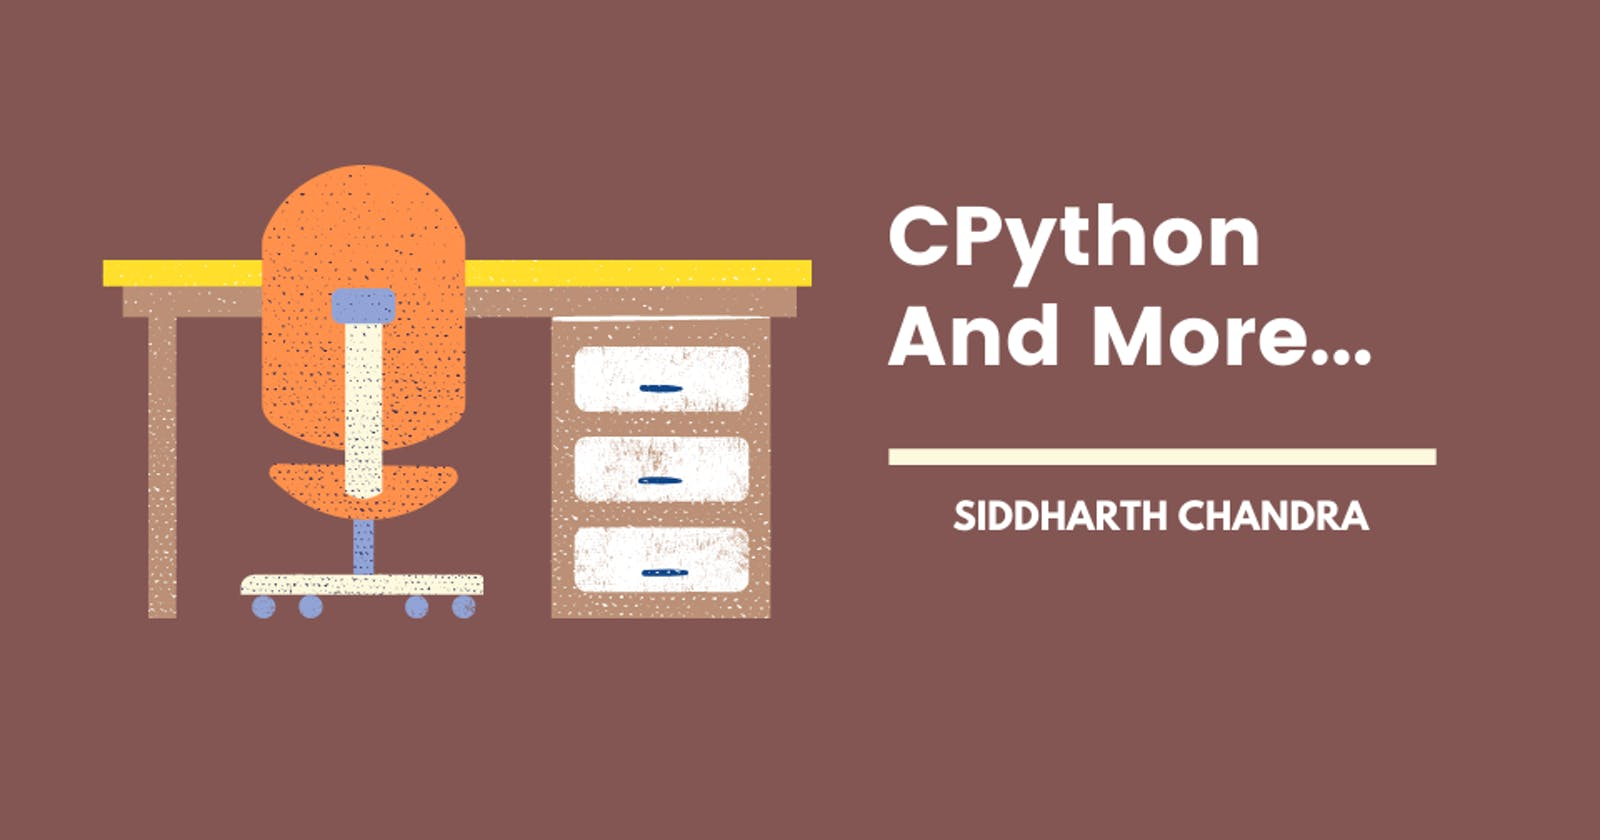 CPython and more...